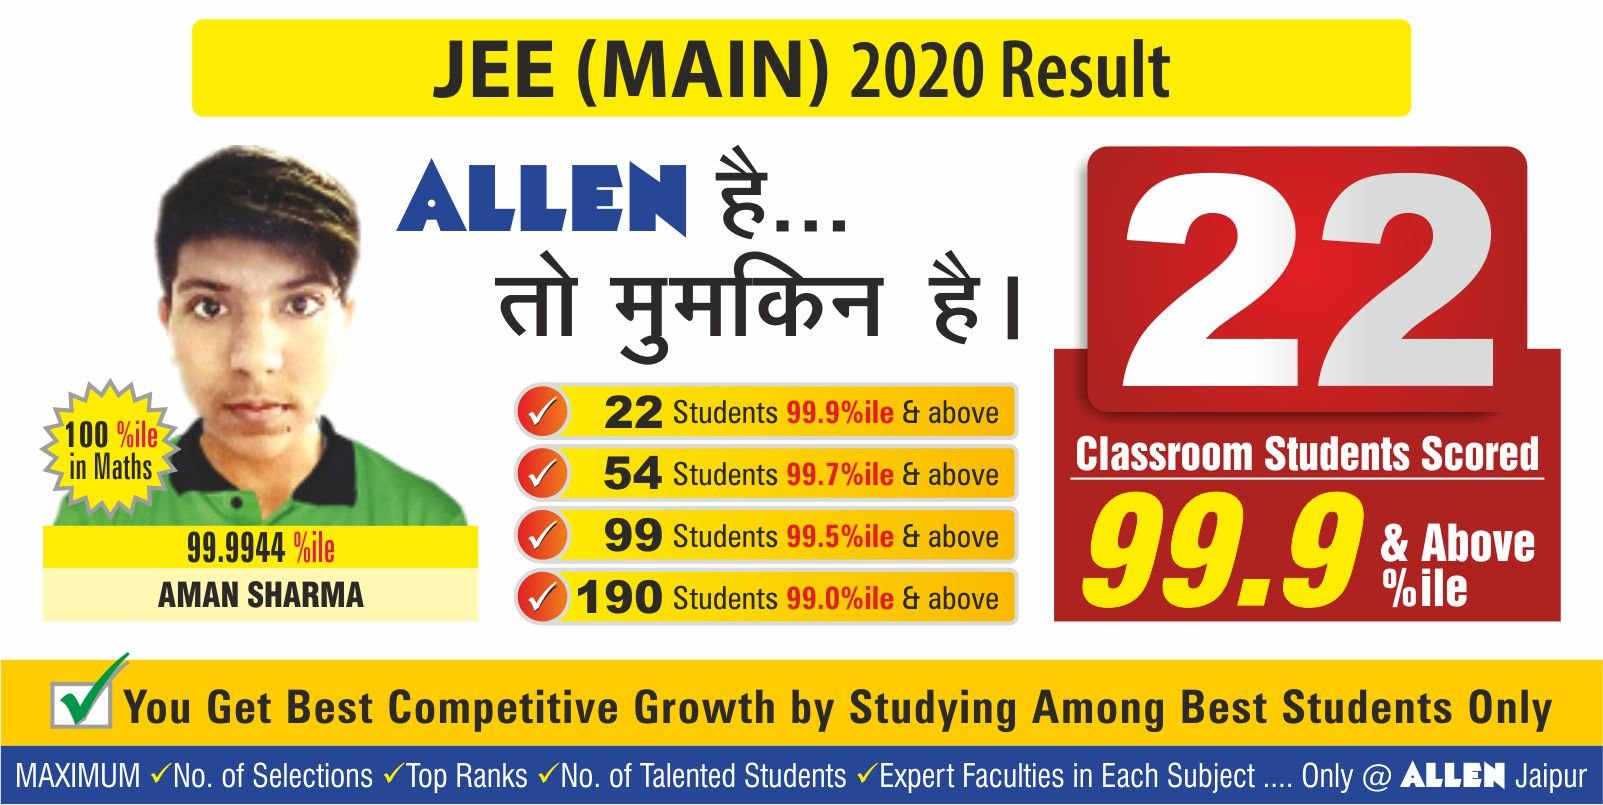 JEE MAINS 2020 RESULT